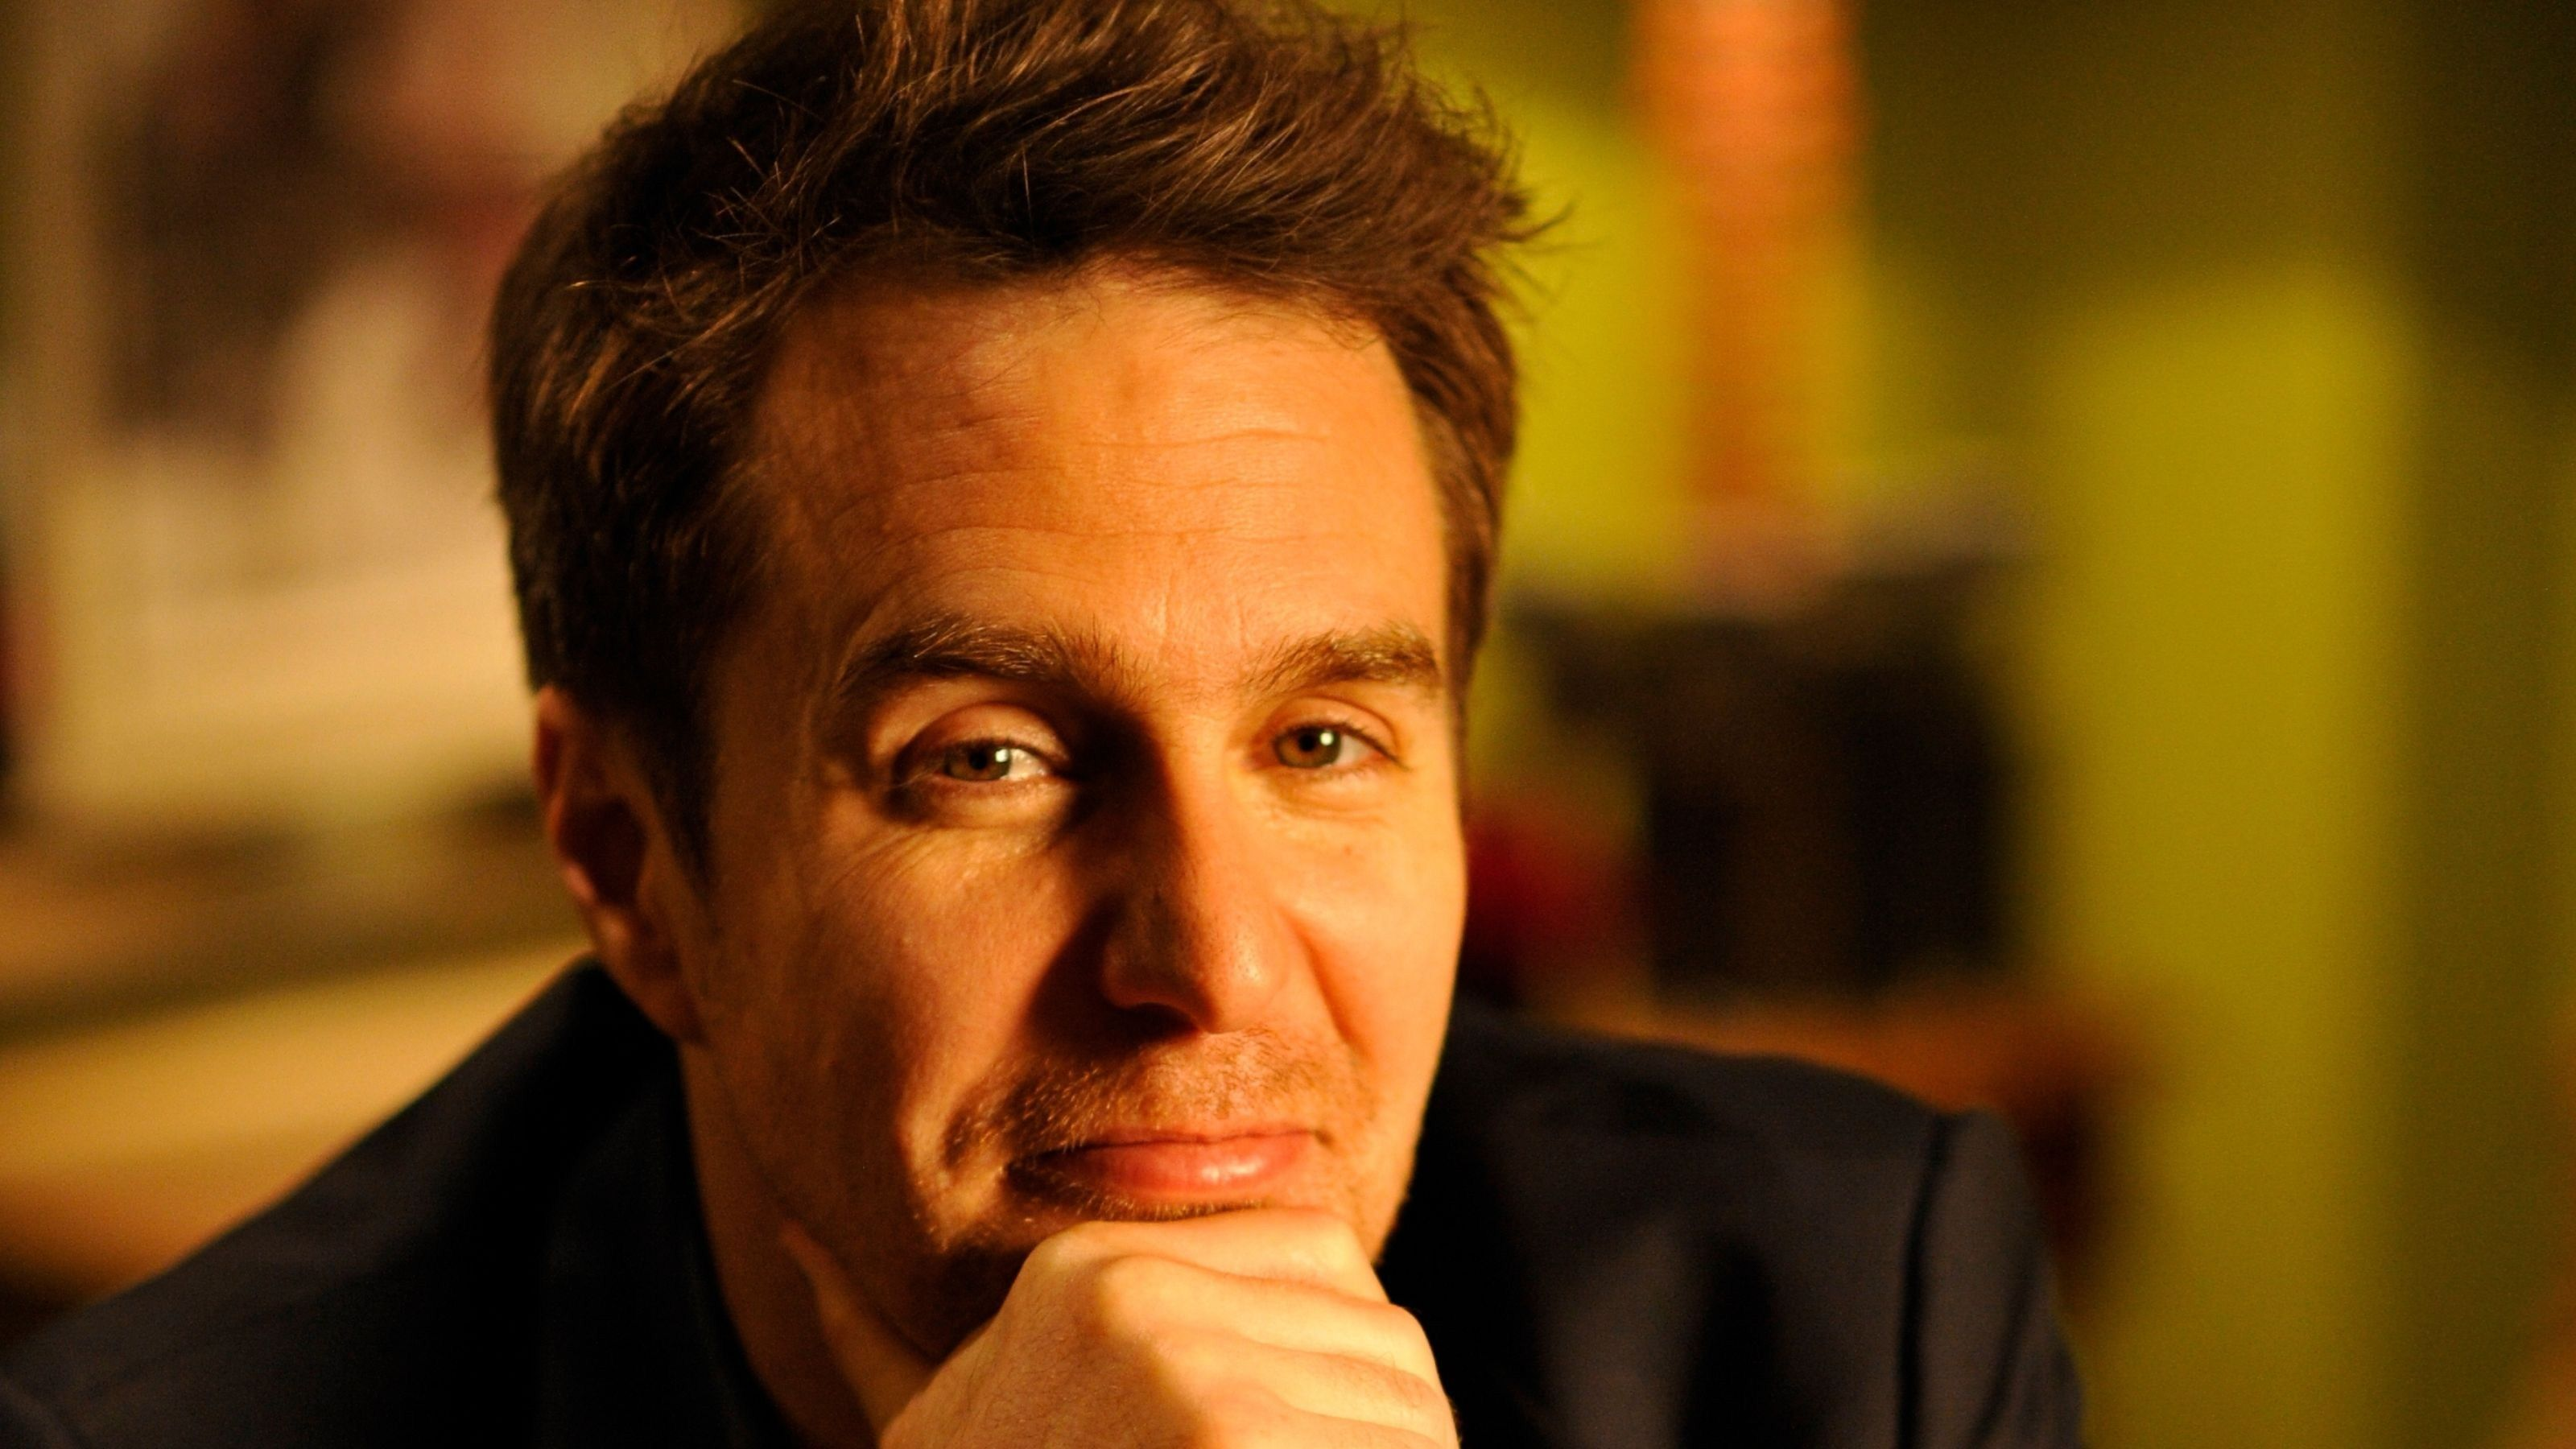 Download 3200x1800 Sam Rockwell, Face Portrait, Close-up ...